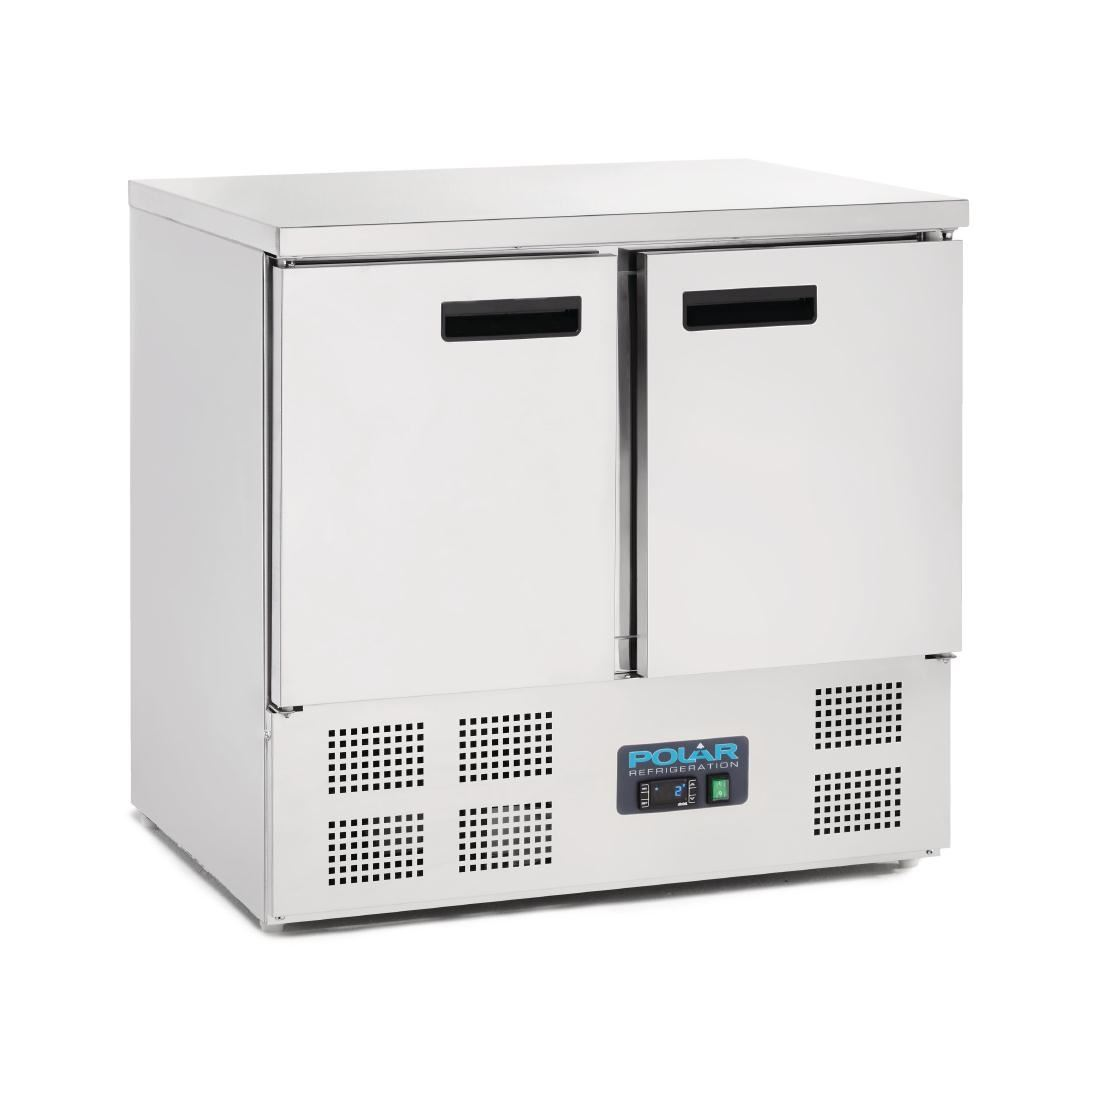 Polar 2 Door Compact Counter Fridge 240 Litre Commercial Kitchen  Refrigerator ...